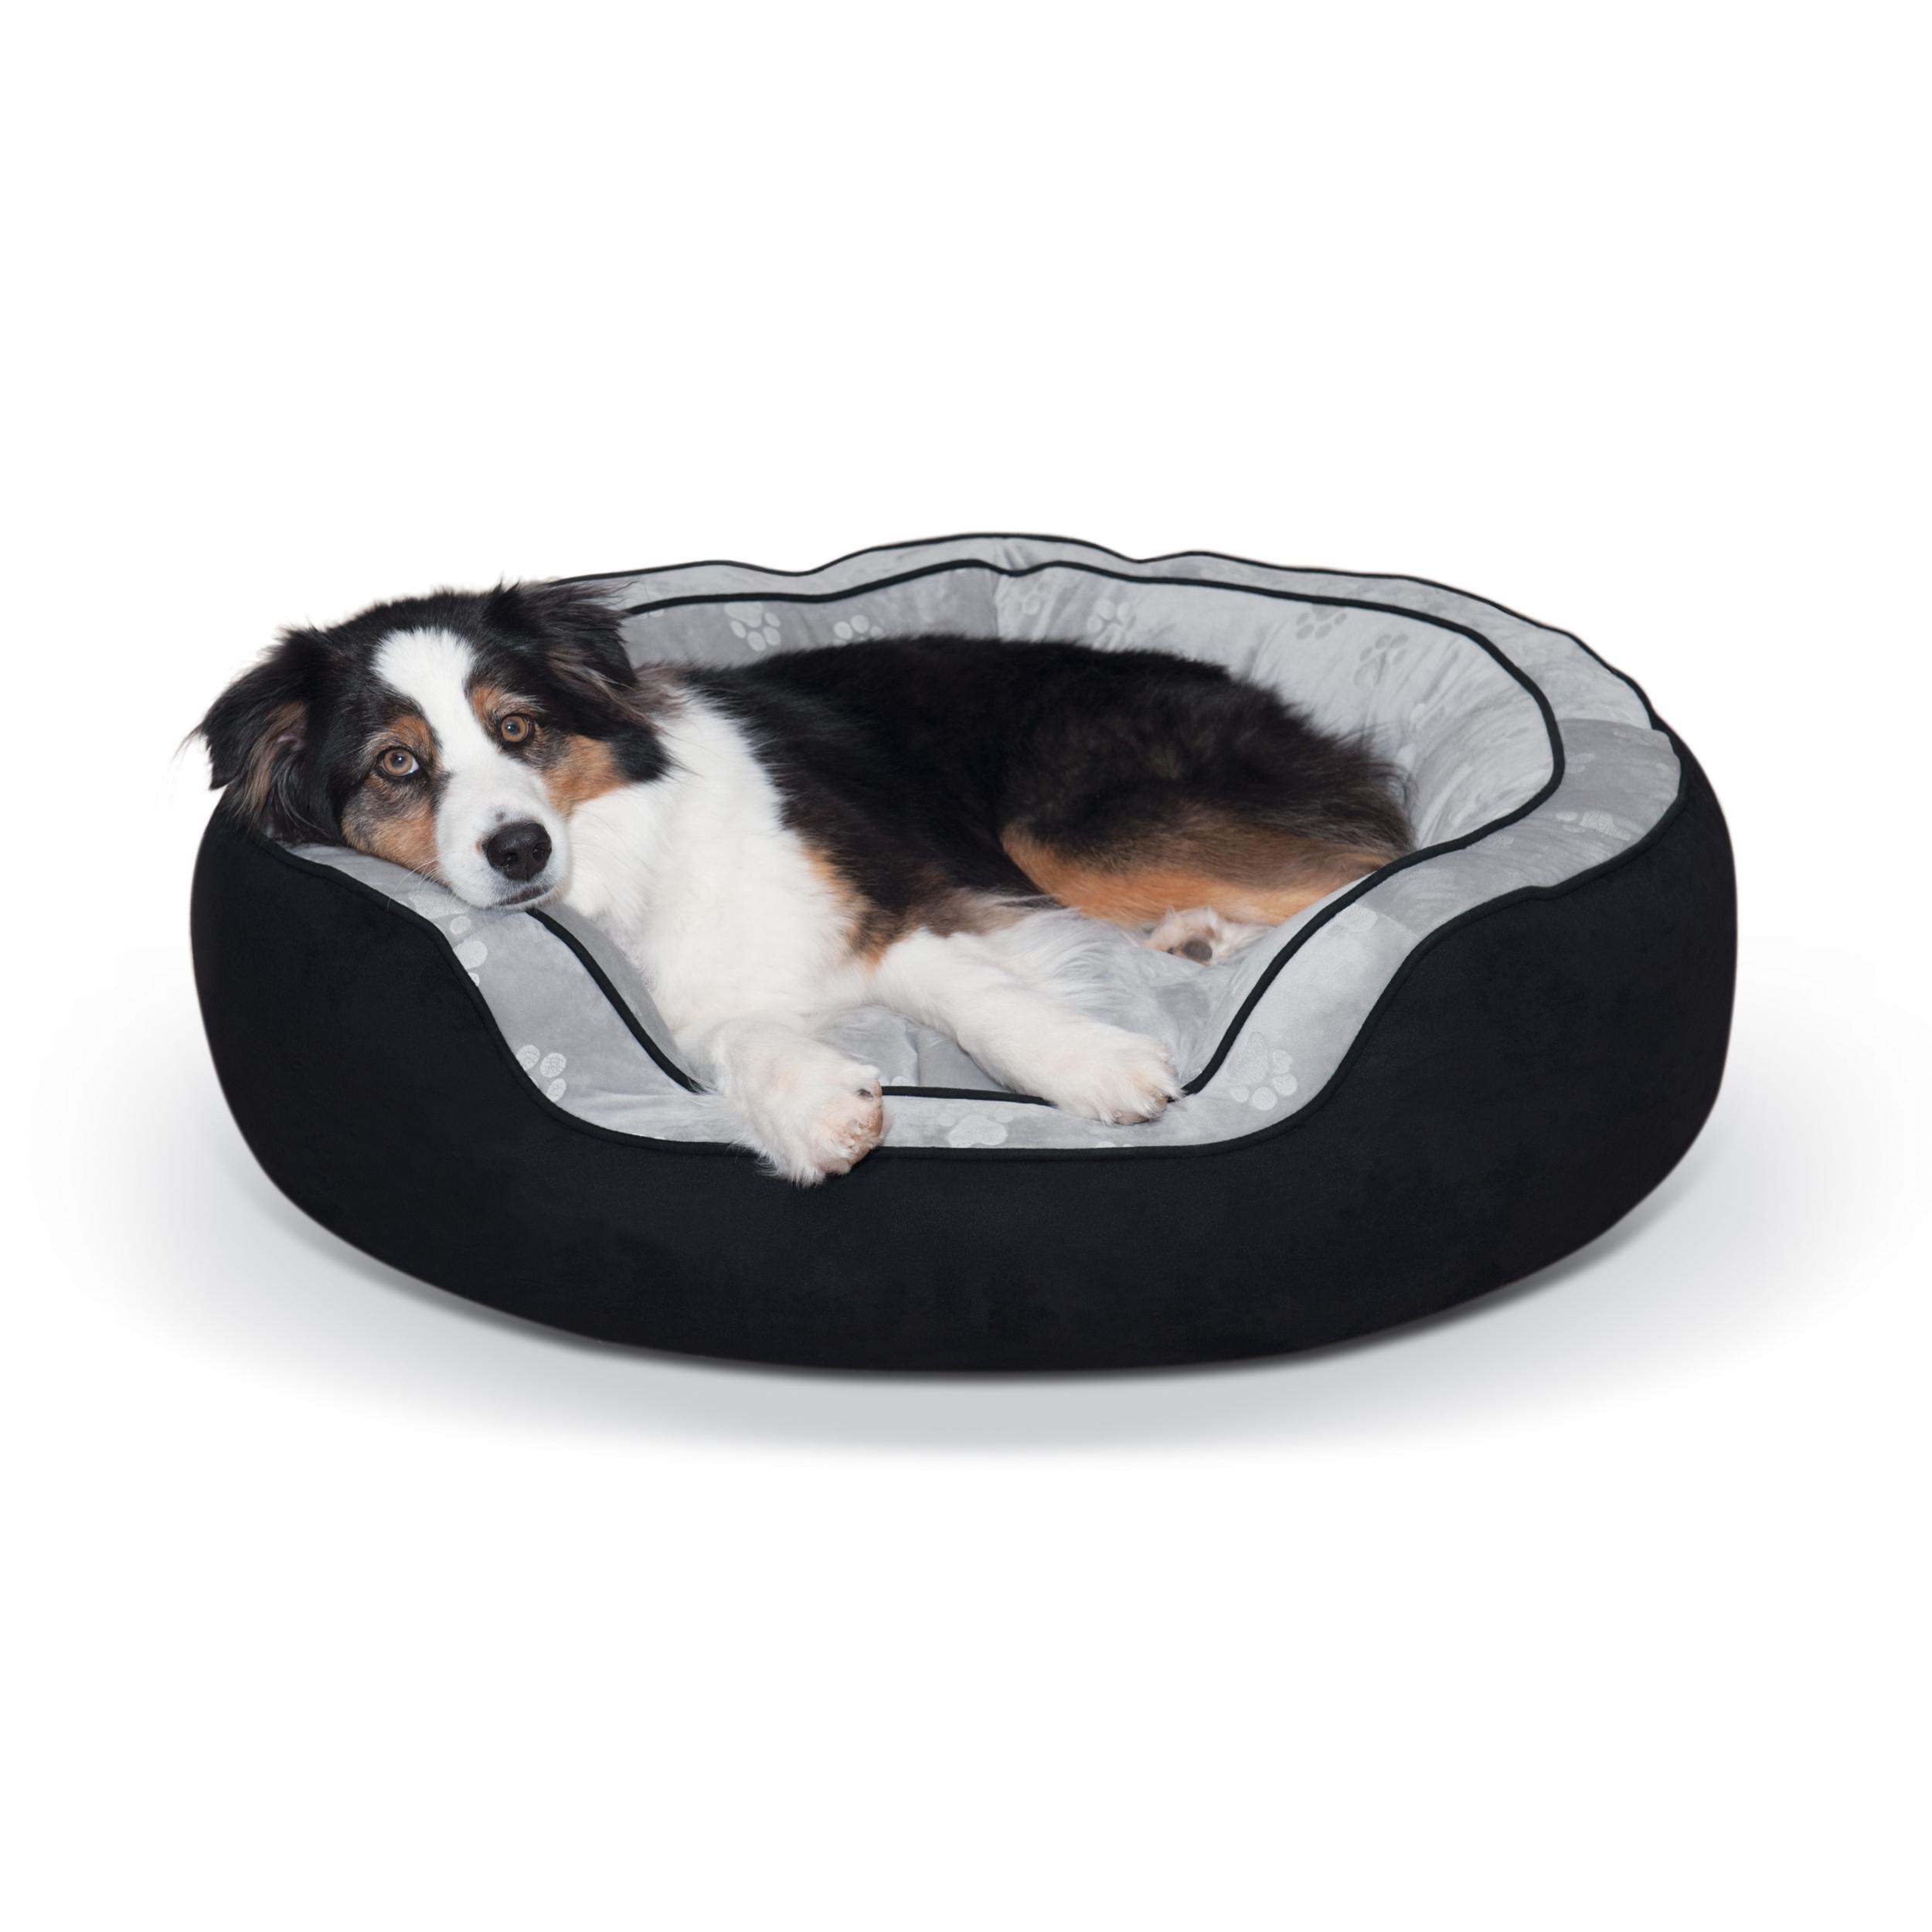 Amazon.com : K&H Pet Products Round N' Plush Bolster Bed